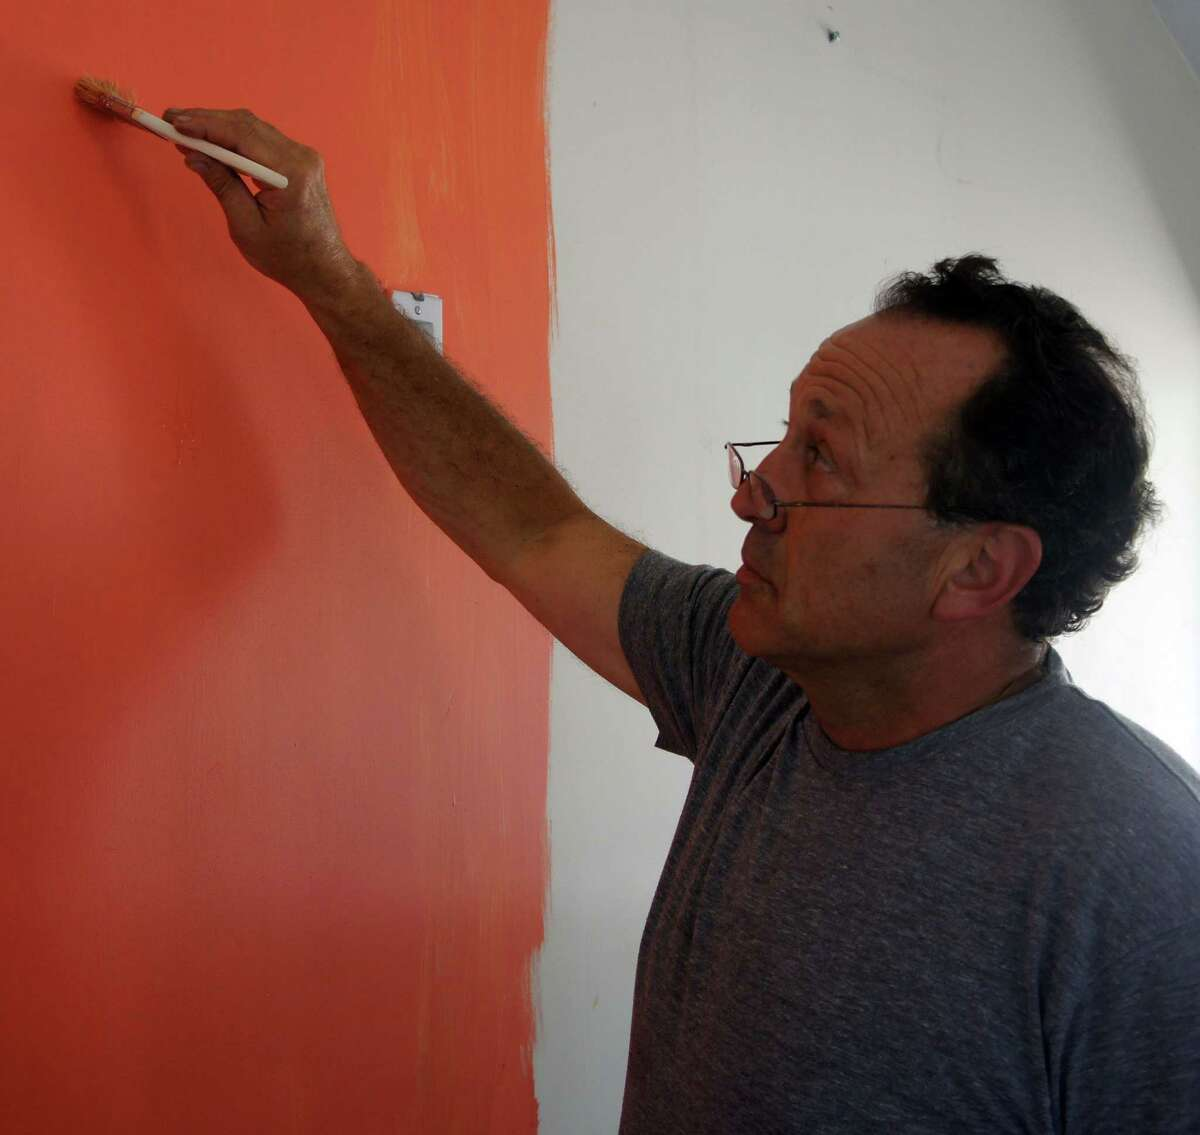 Adam Lubarsky, owner of the Blu Parrot, a new restaurant at 60 Charles St. in the Saugatuck section of town, does some painting inside the restaurant. The Blu Parrot is scheduled to open in late September or early October, Lubarsky said. Wednesday, June 27, 2012/ Westport, CT